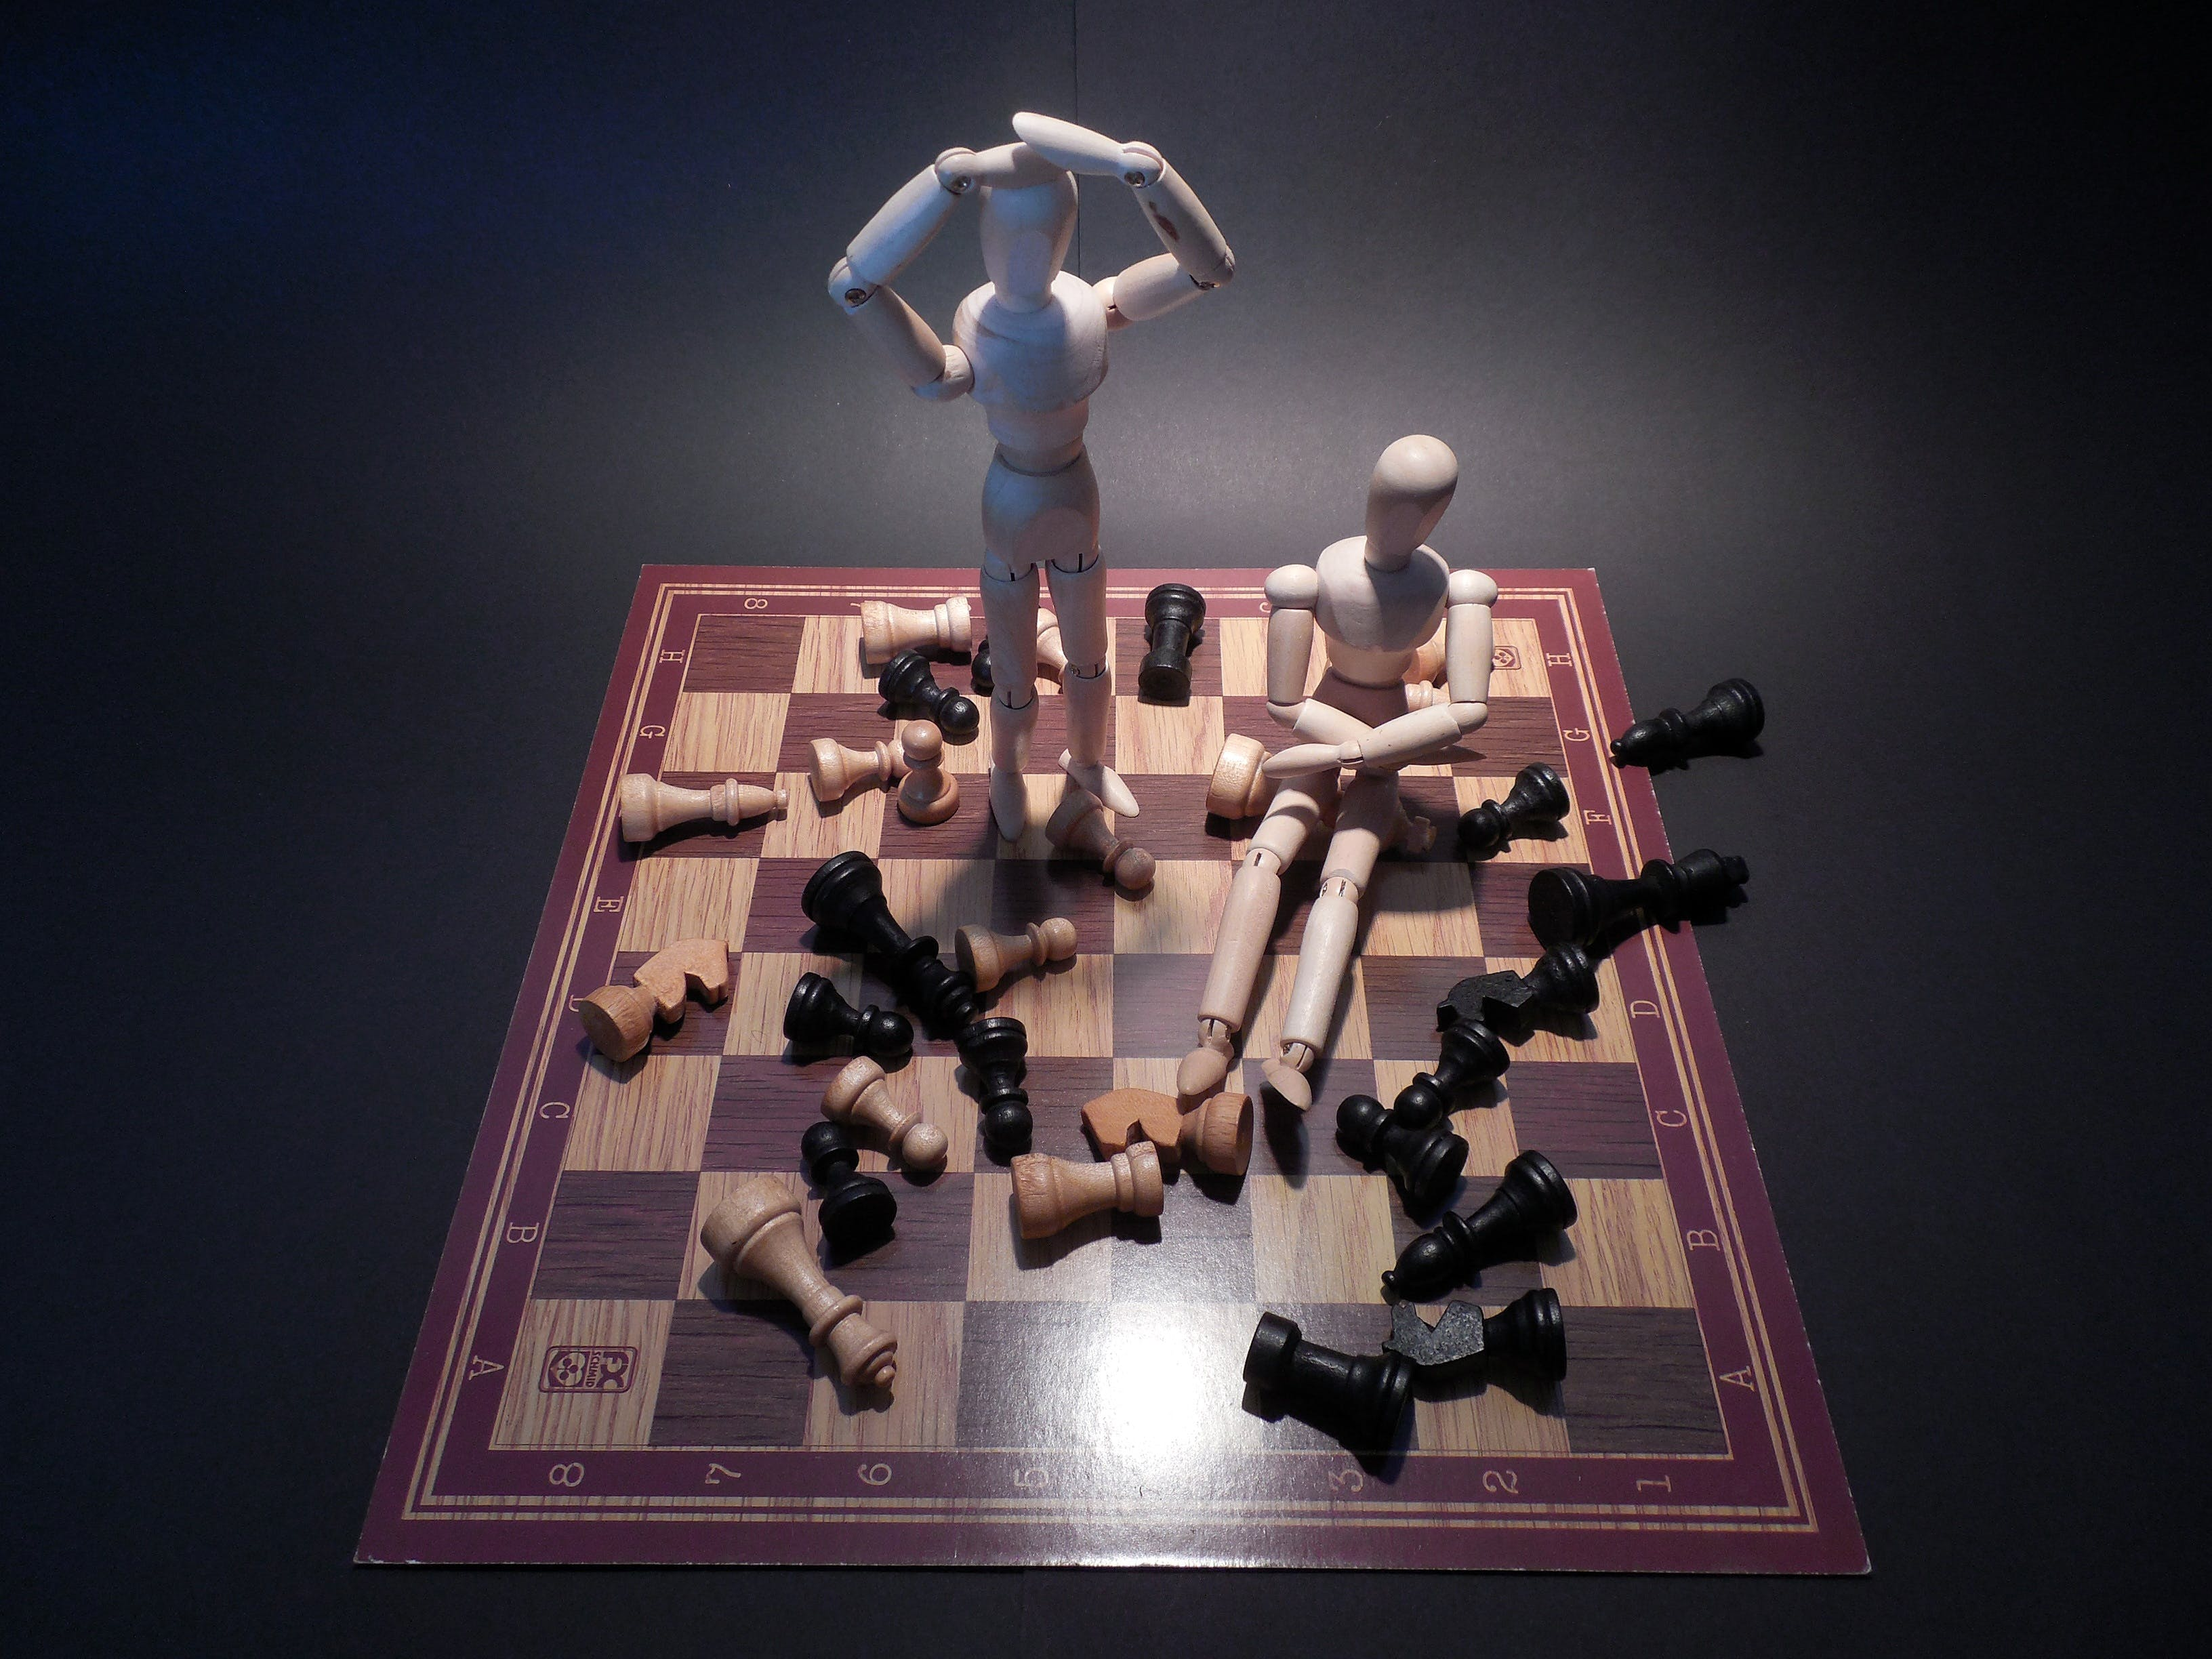 Two White Wooden Mannequins on Wooden Chess Board